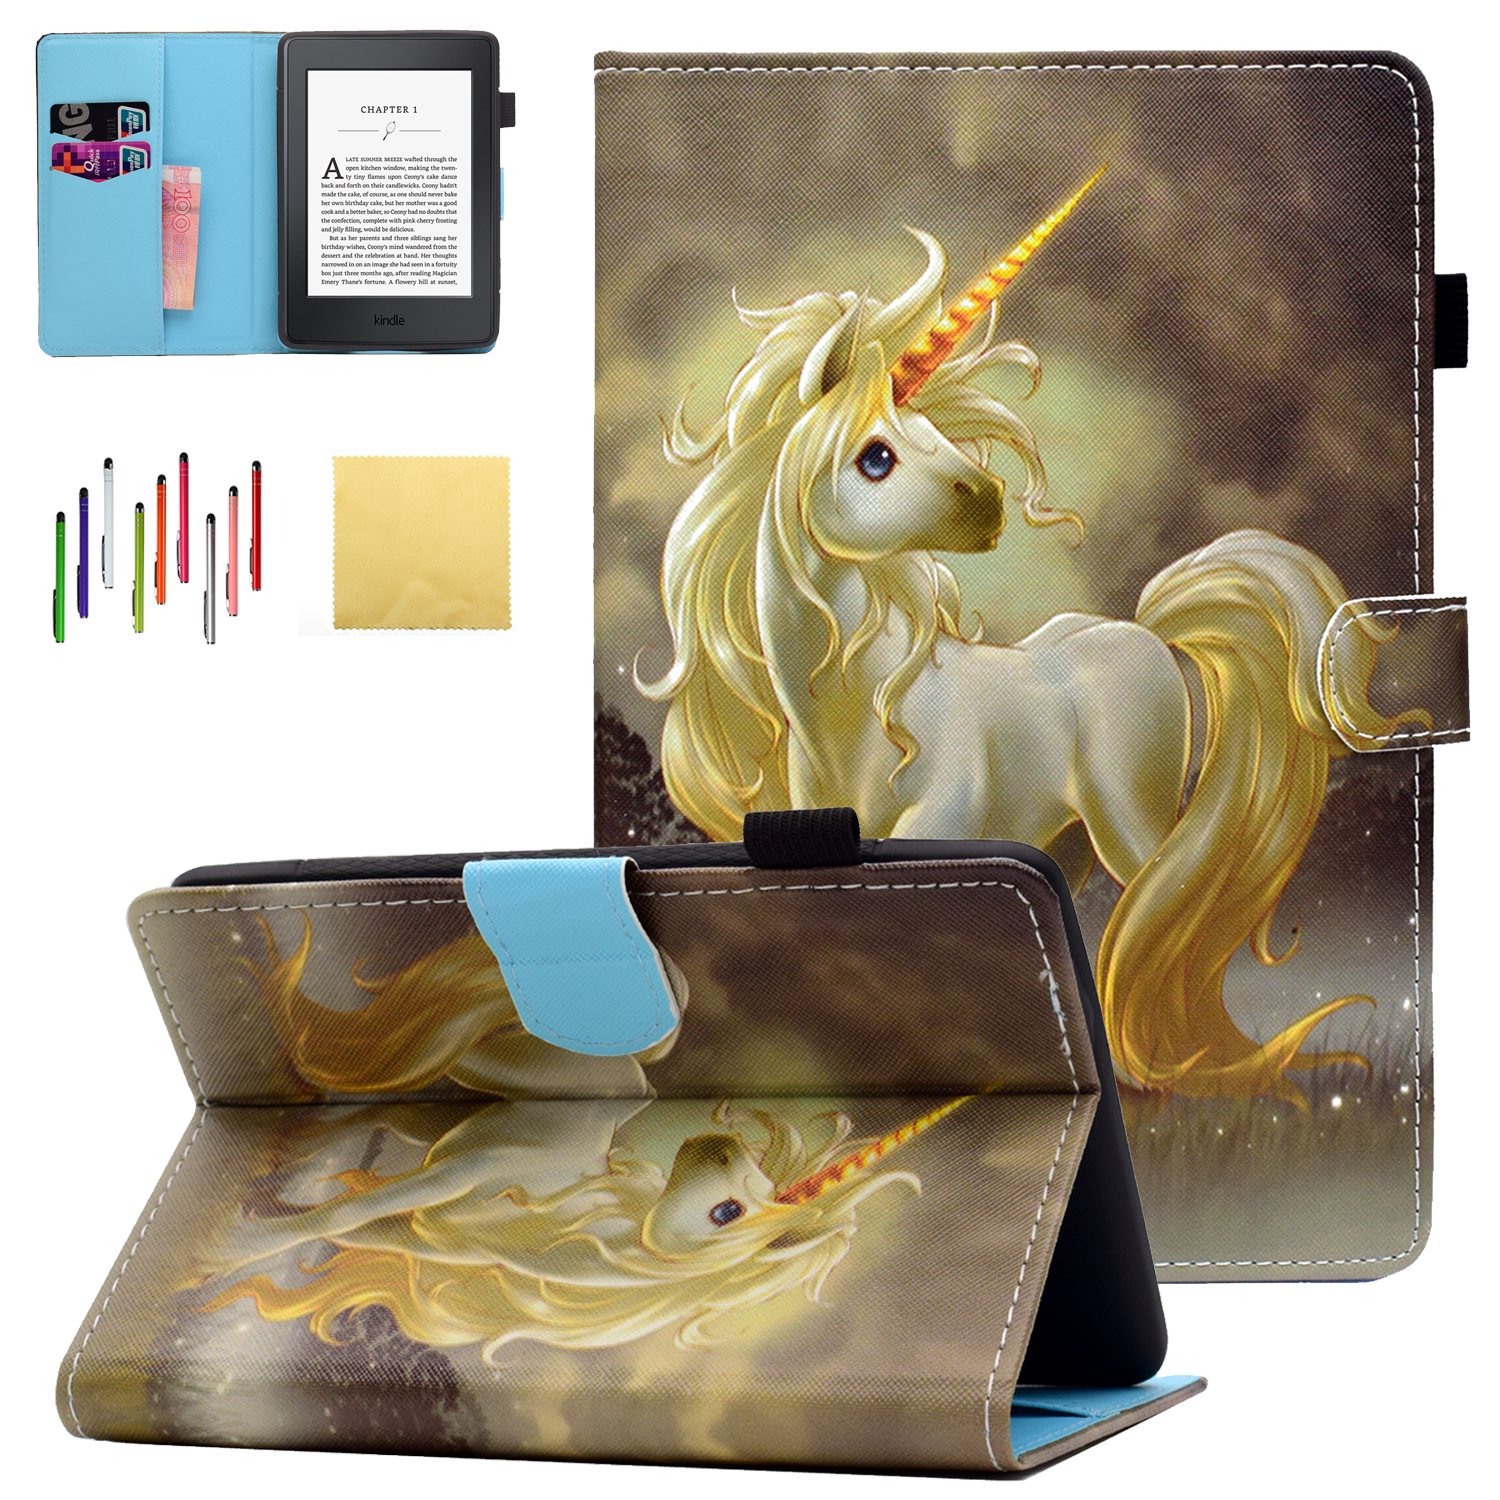 """Kindle Paperwhite 3 2 1 Case, Goodest PU Leather Folio Folding Stand Cover with Pencil Holder Auto Wake Sleep for Amazon Kindle Paperwhite 6"""" (Fits from 2012 to 2016 Versions), Horse"""